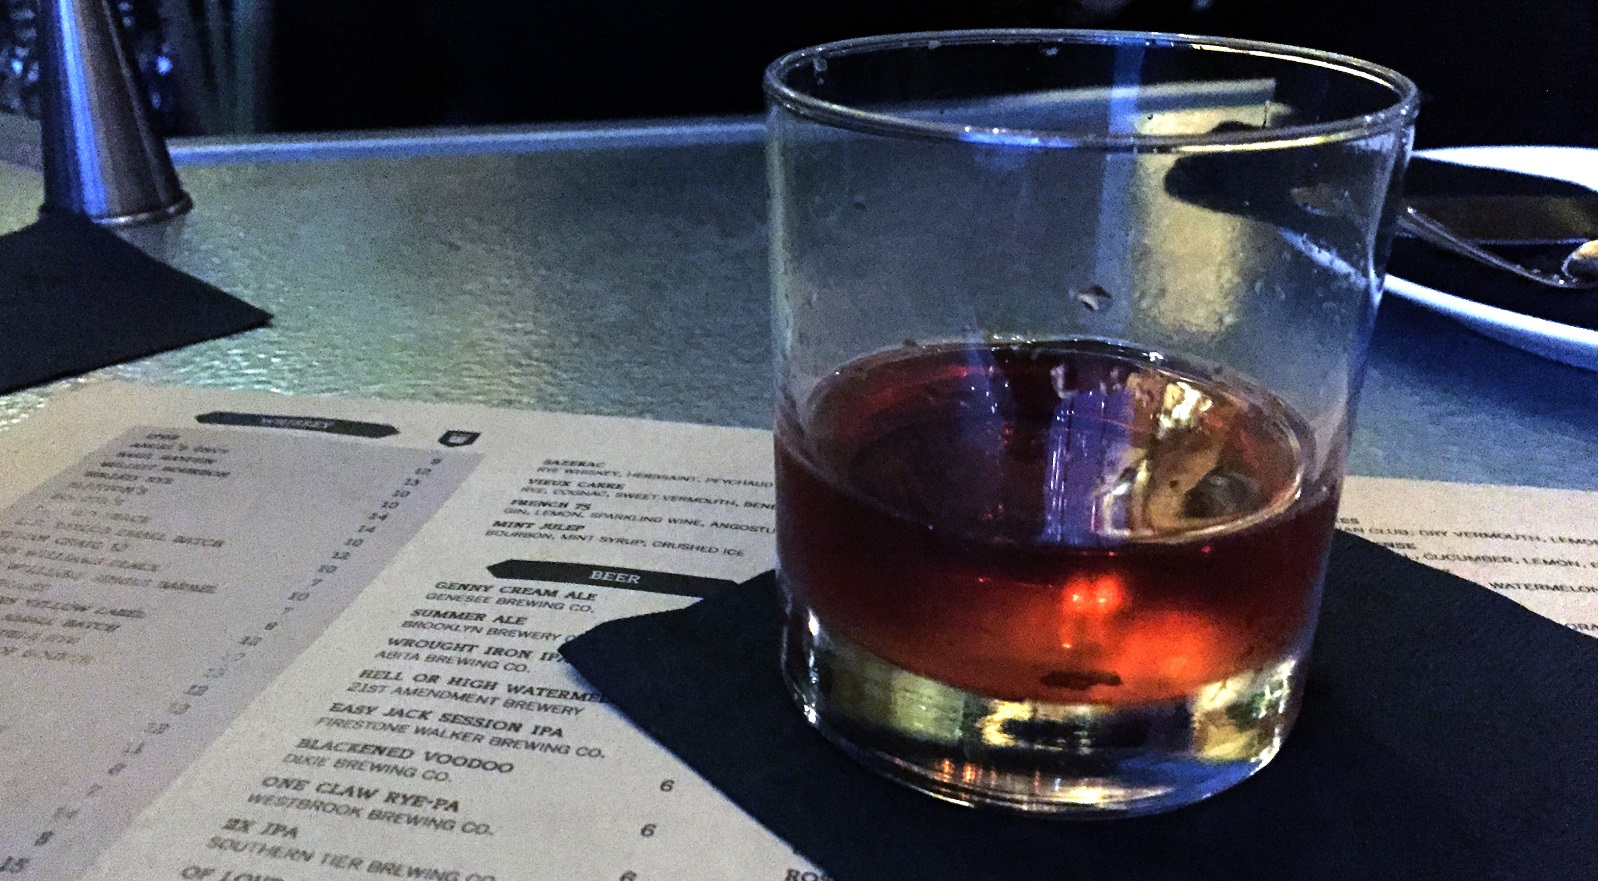 The Vieux Carre is a nickname for New Orleans' French Quarter. Lizz Schumer explores Toutant's cocktail. (Lizz Schumer/Special to The News)